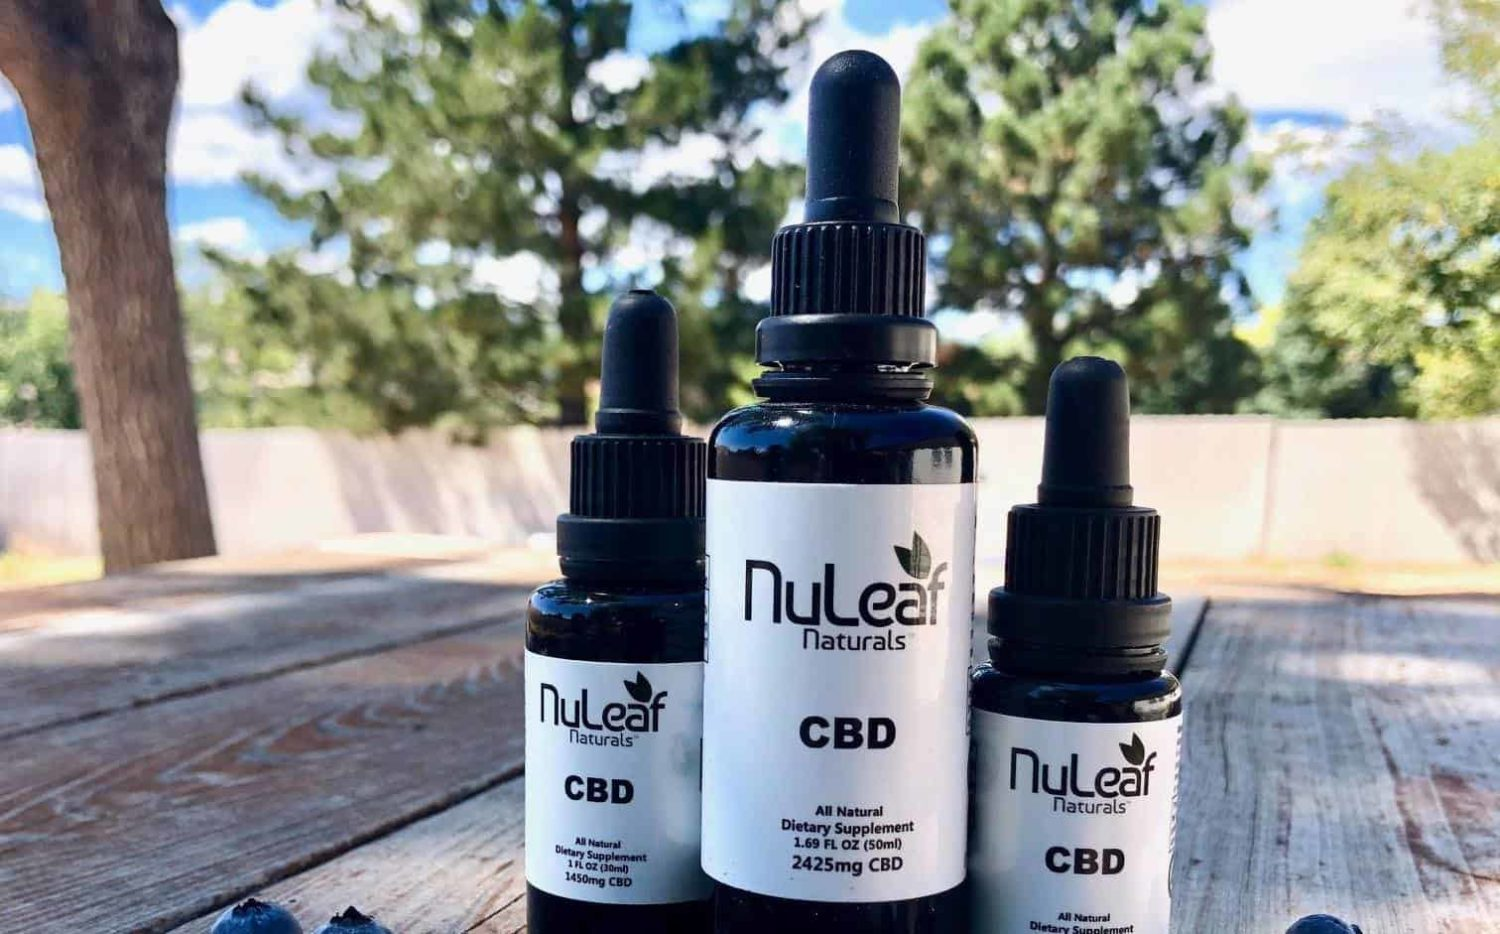 Top 40 Best CBD Oils Reviewed for 2019 - Guide to CBD